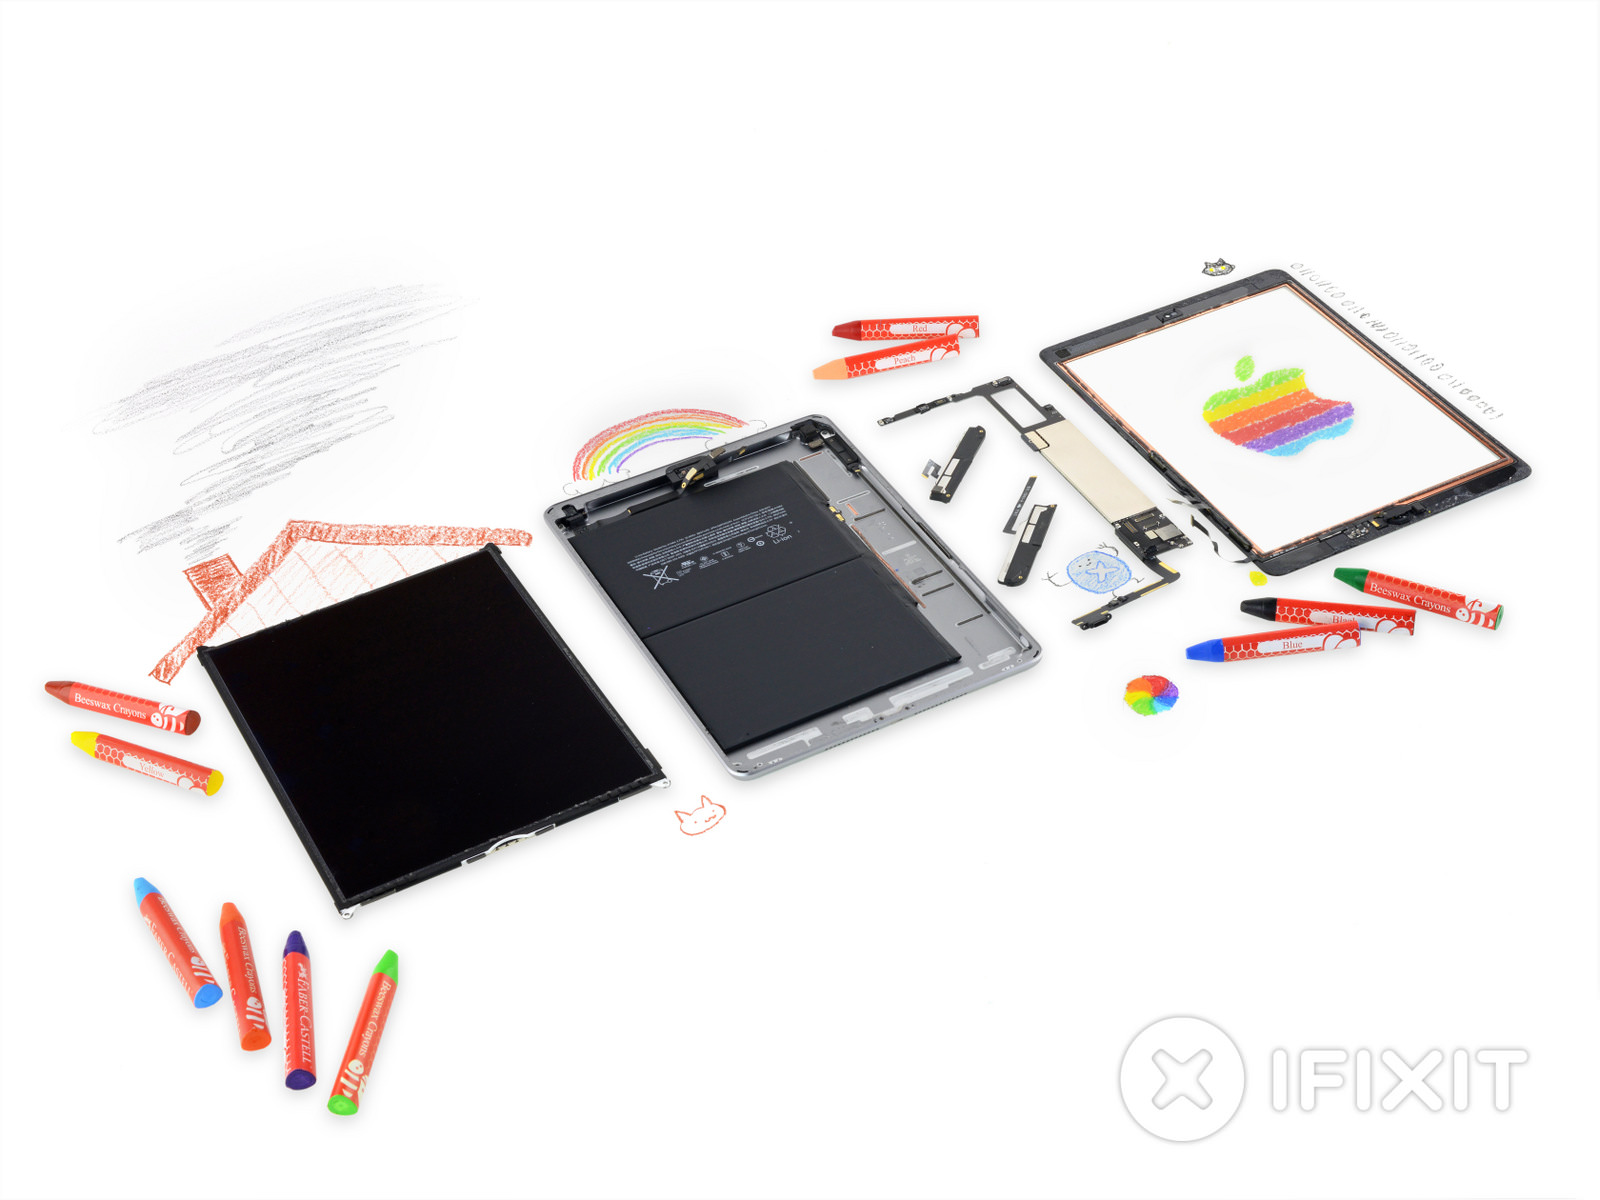 IFixit iPad 6th gen teardown 1